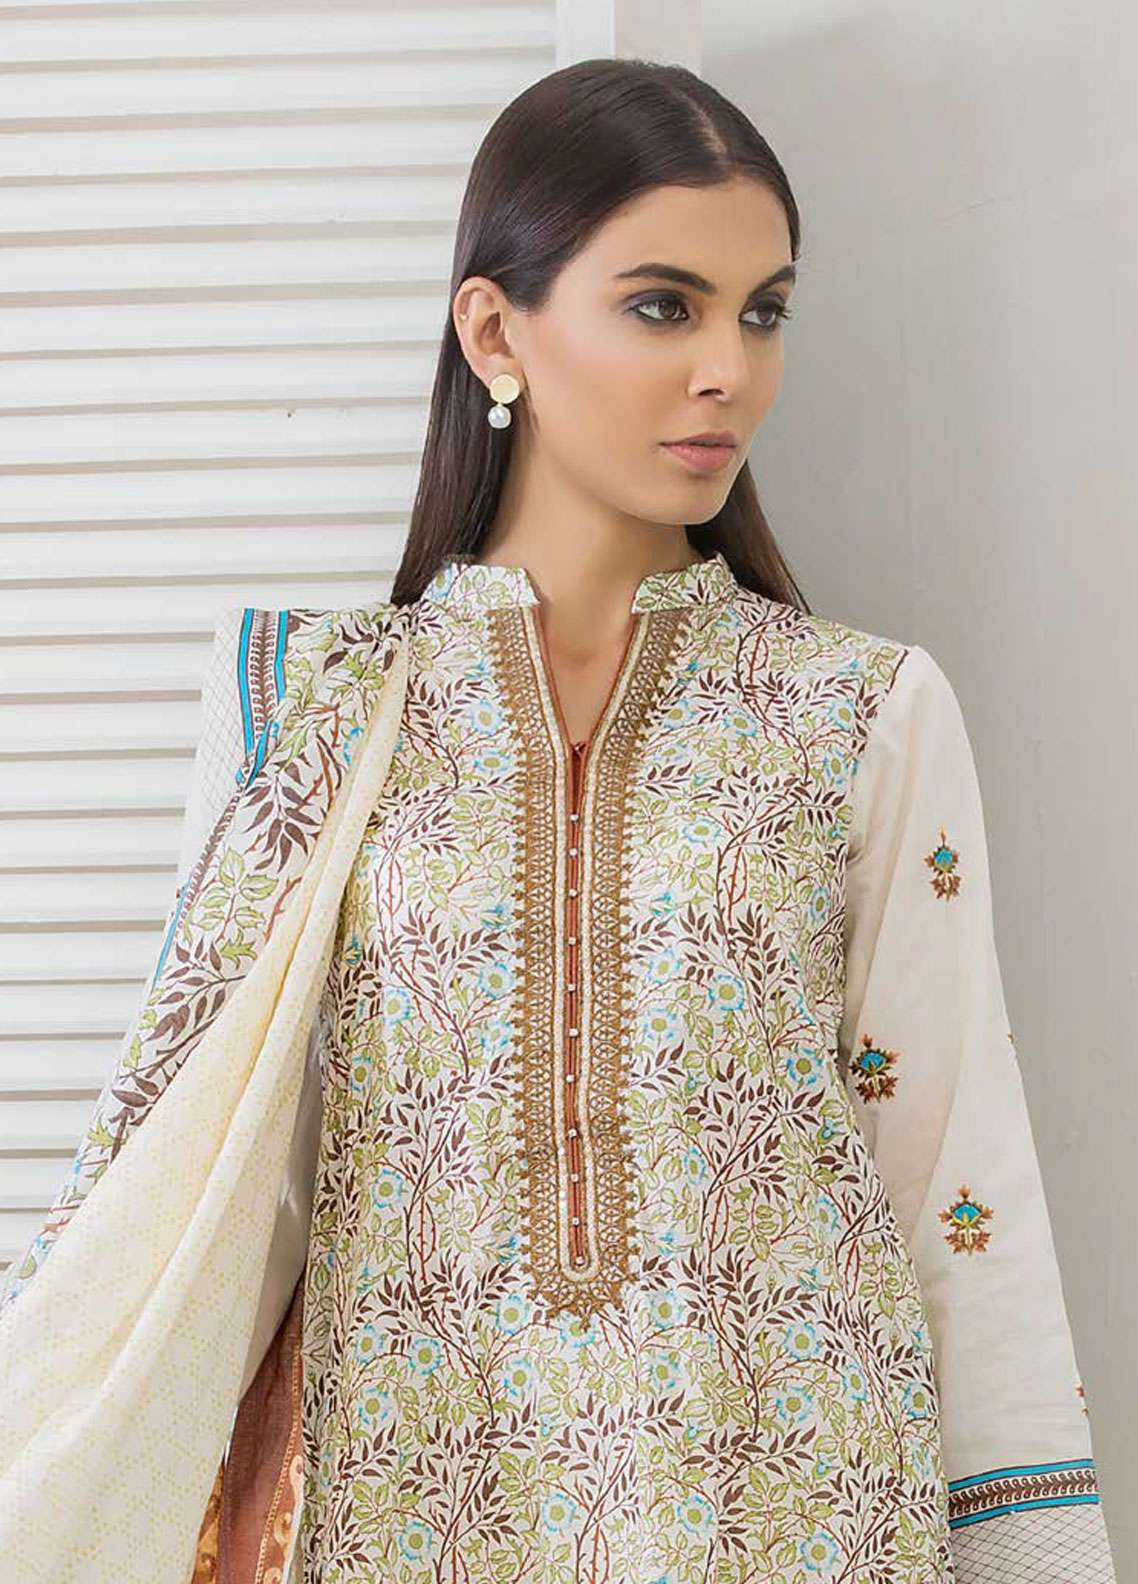 Orient Textile Embroidered Lawn Unstitched 3 Piece Suit OT19-L2 117 B - Spring / Summer Collection